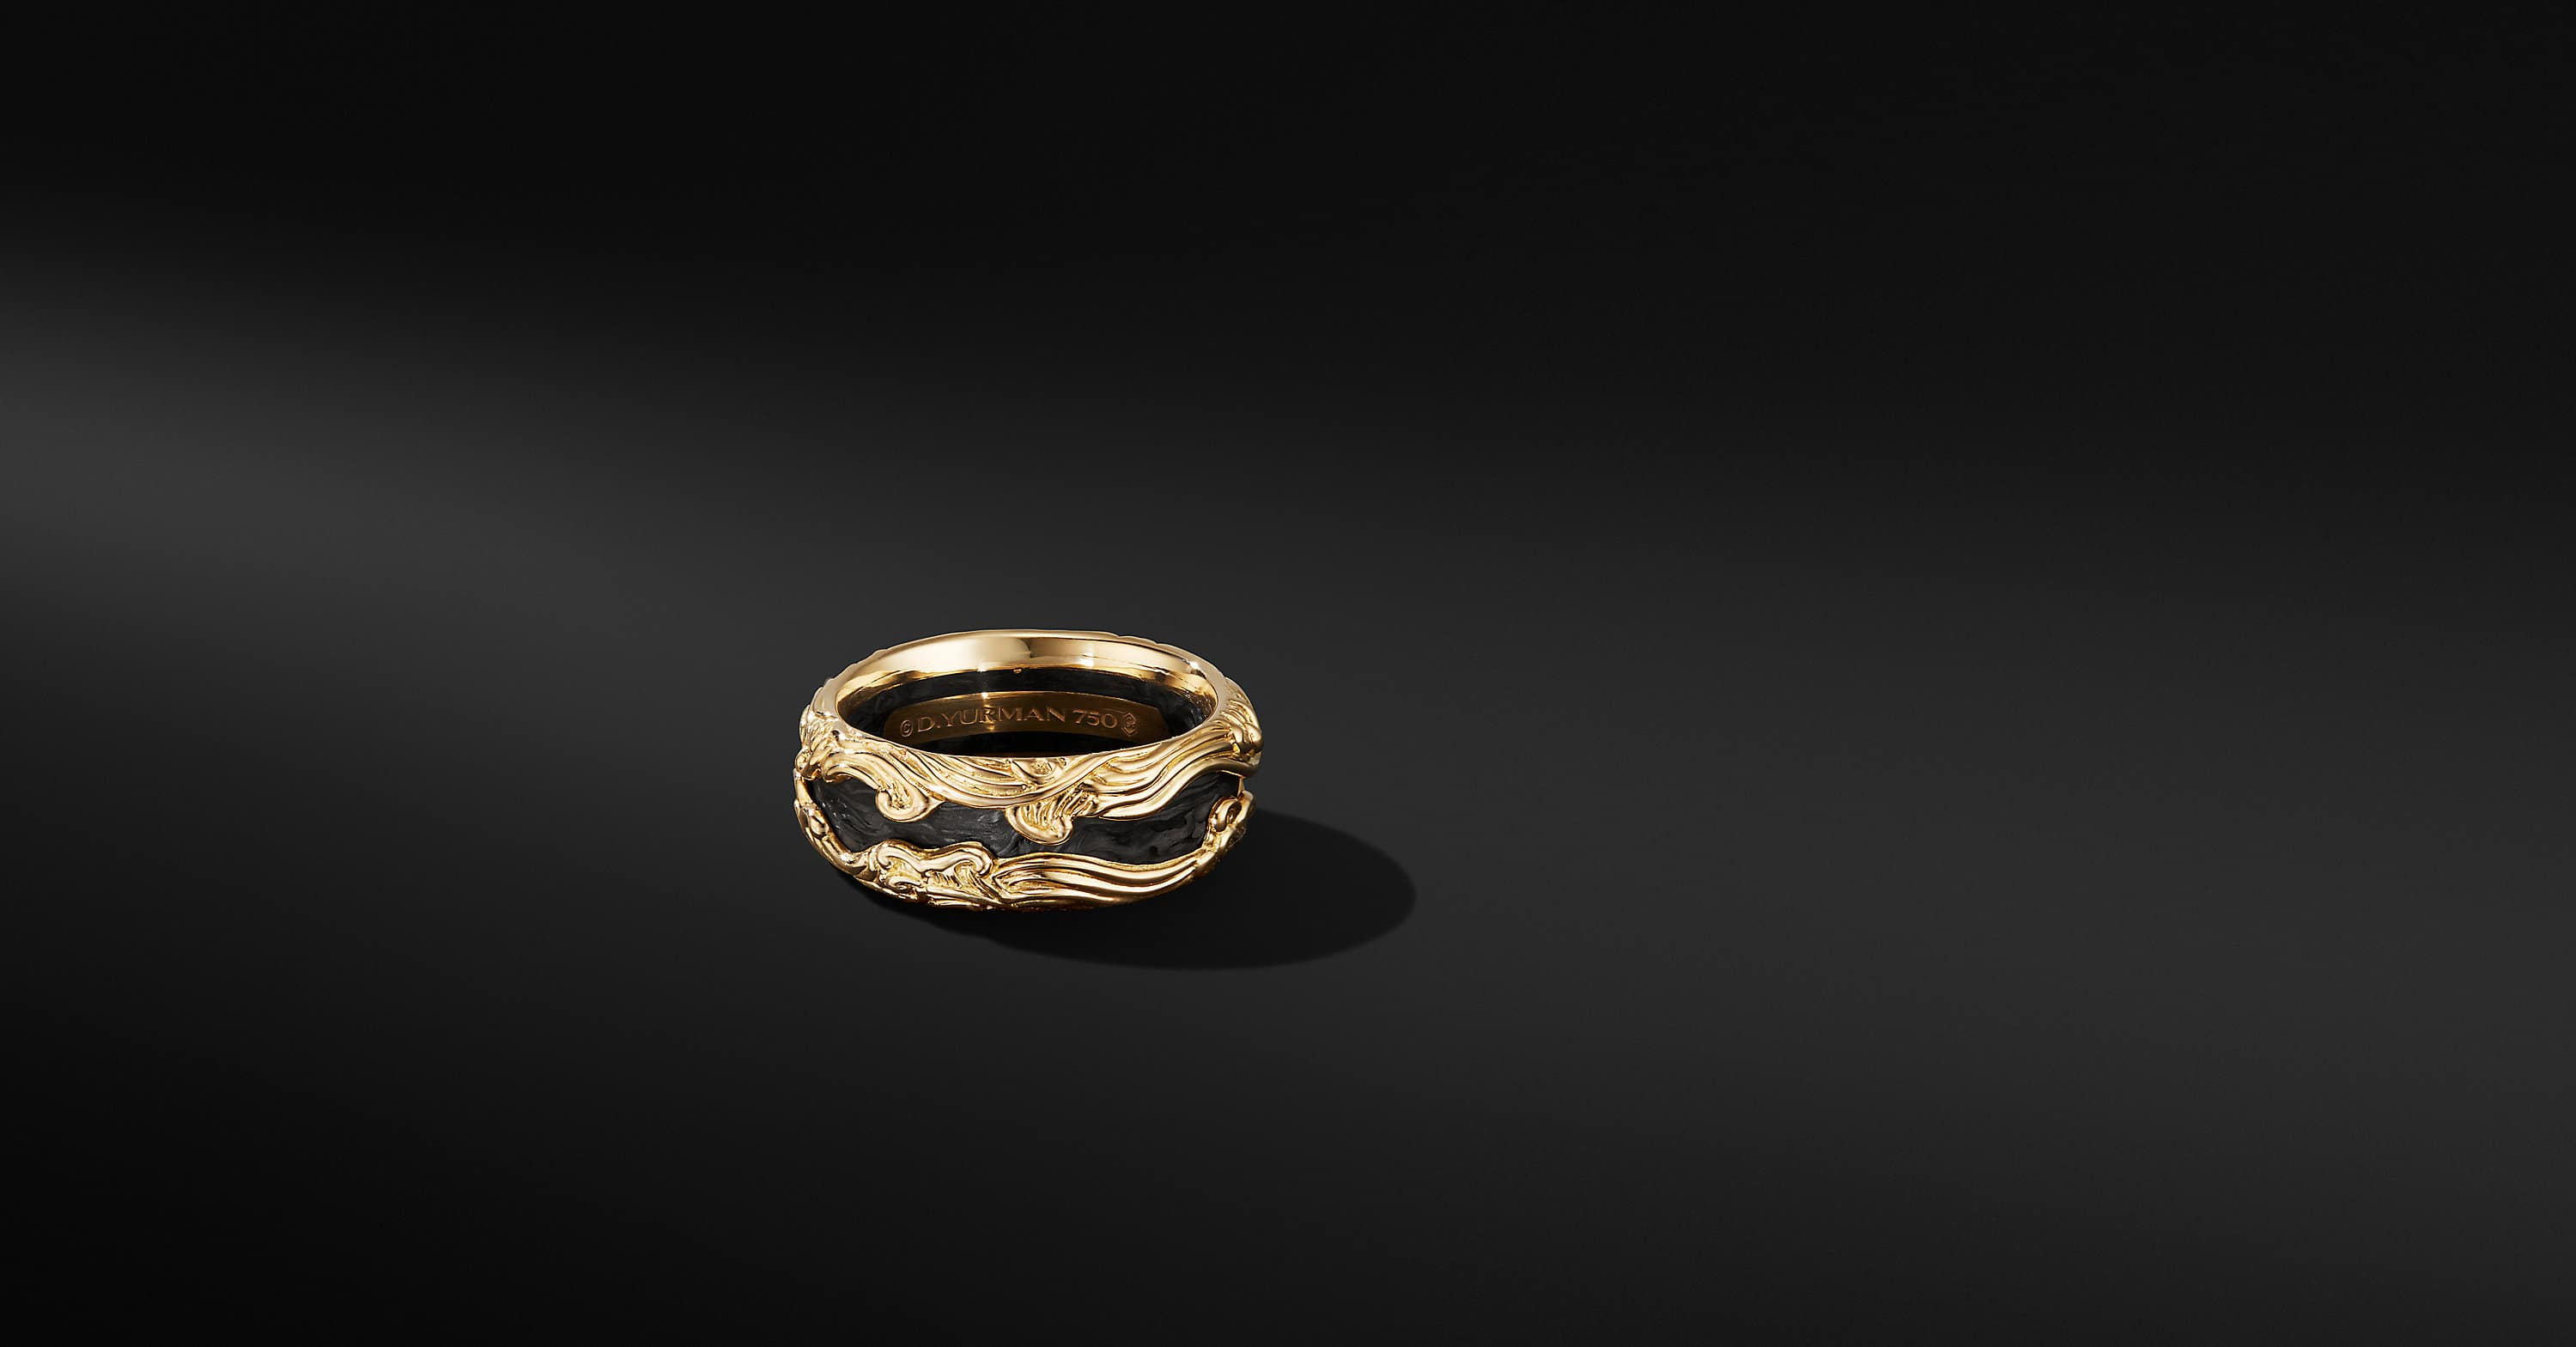 Waves Band Ring in 18K Yellow Gold, 10mm